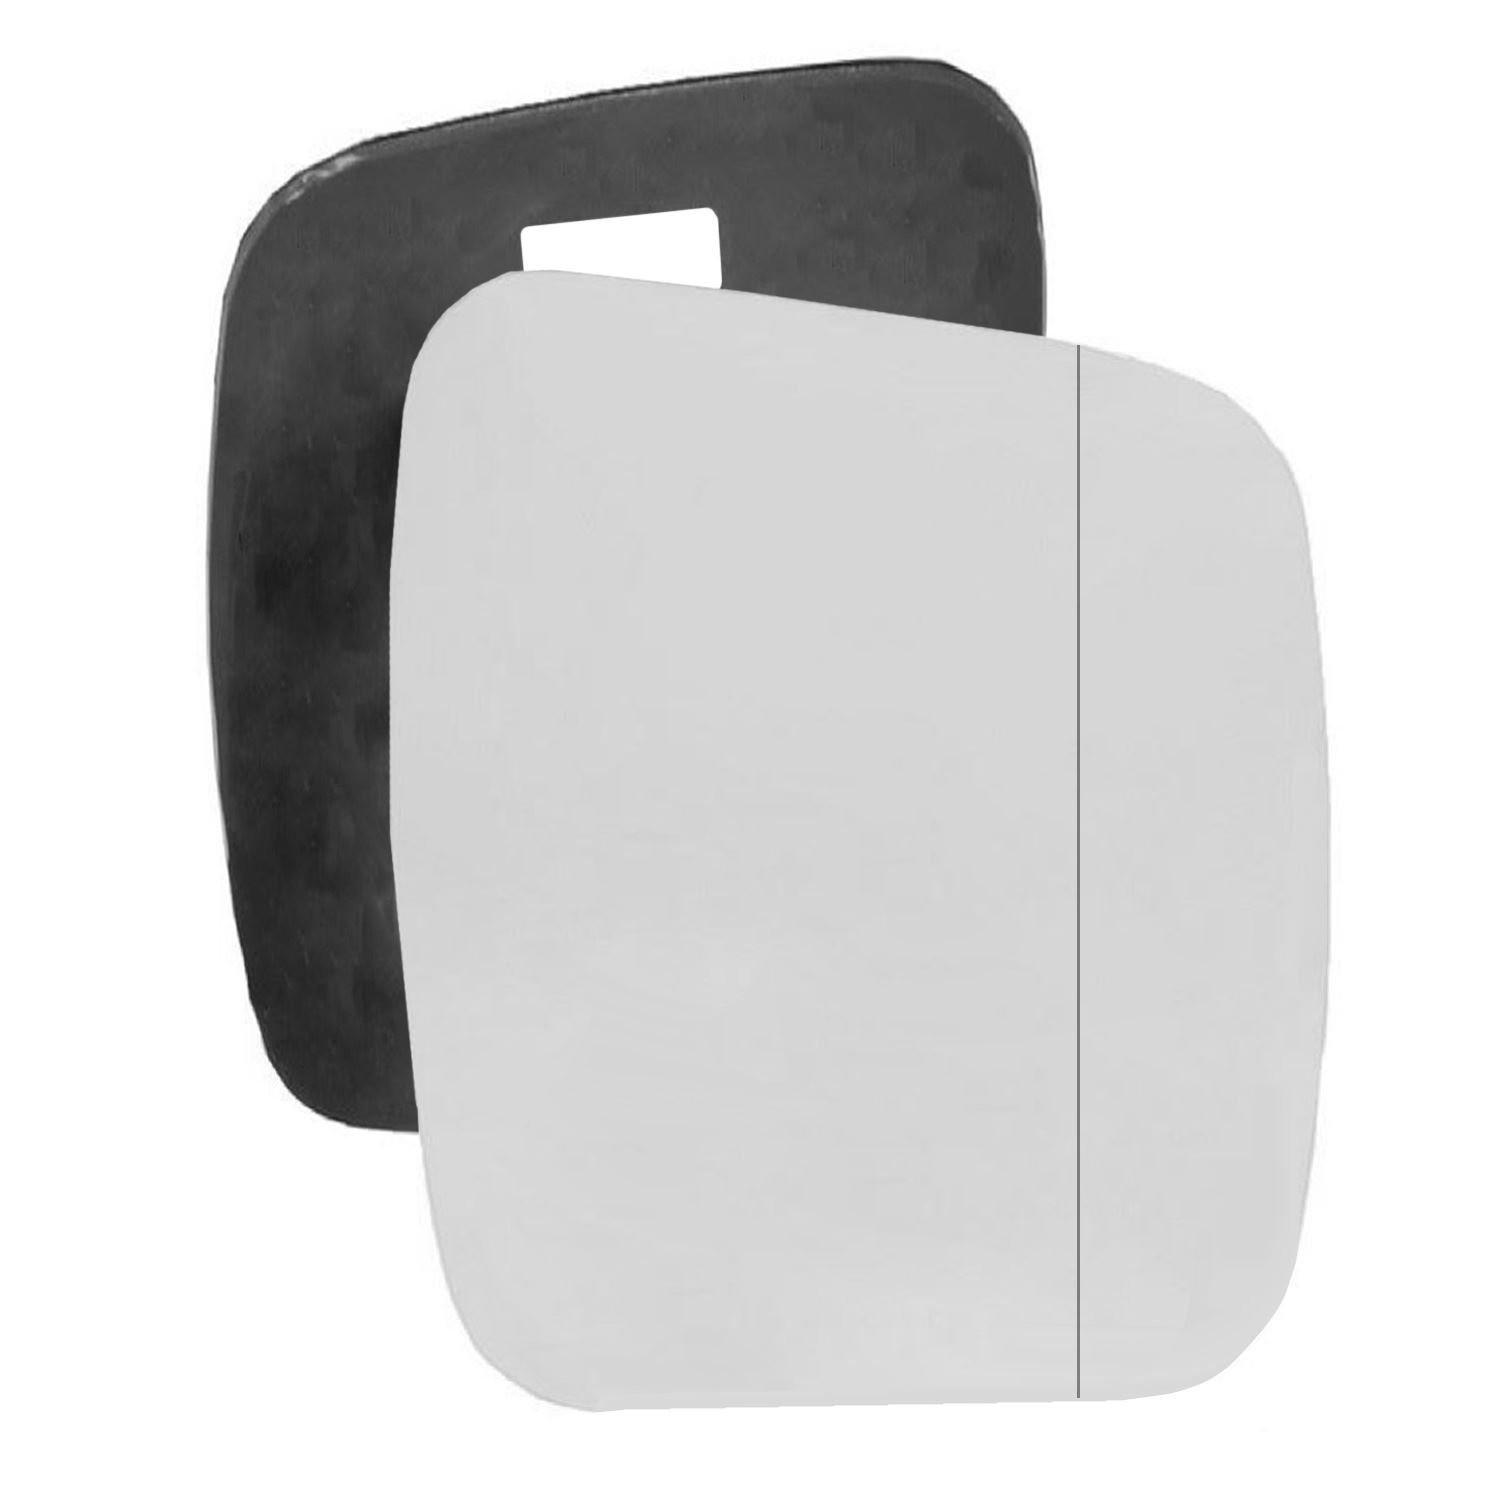 For Citroen Nemo 2008-2015 Driver right hand side wing door mirror wide angle glass with backing plate Sylgab